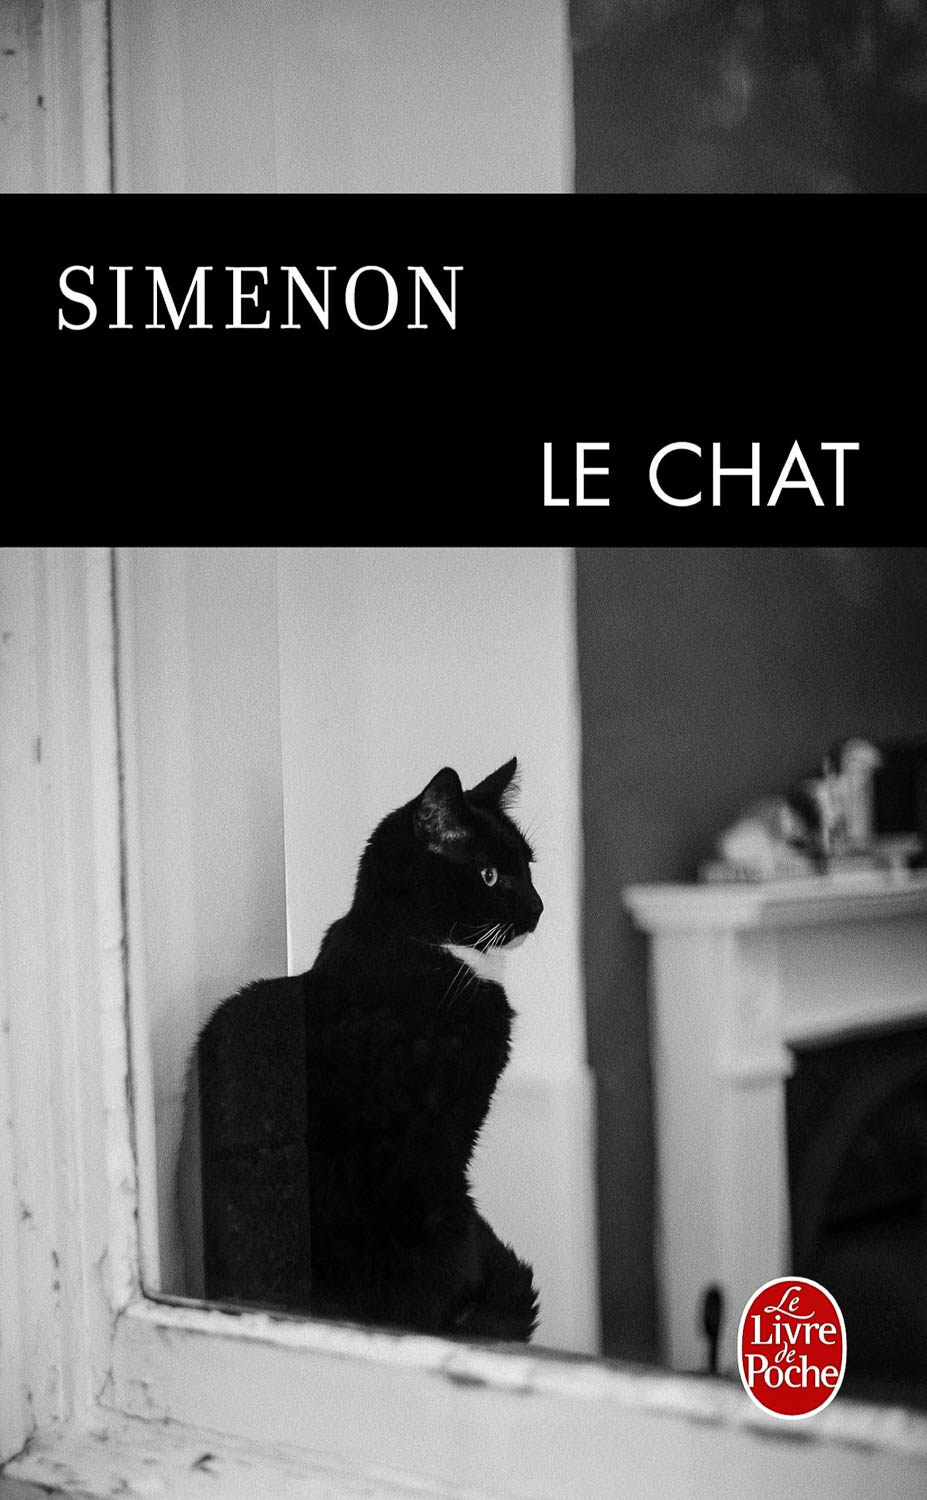 Simenon, Le Chat Book Cover Photograph by Wolf Kettler